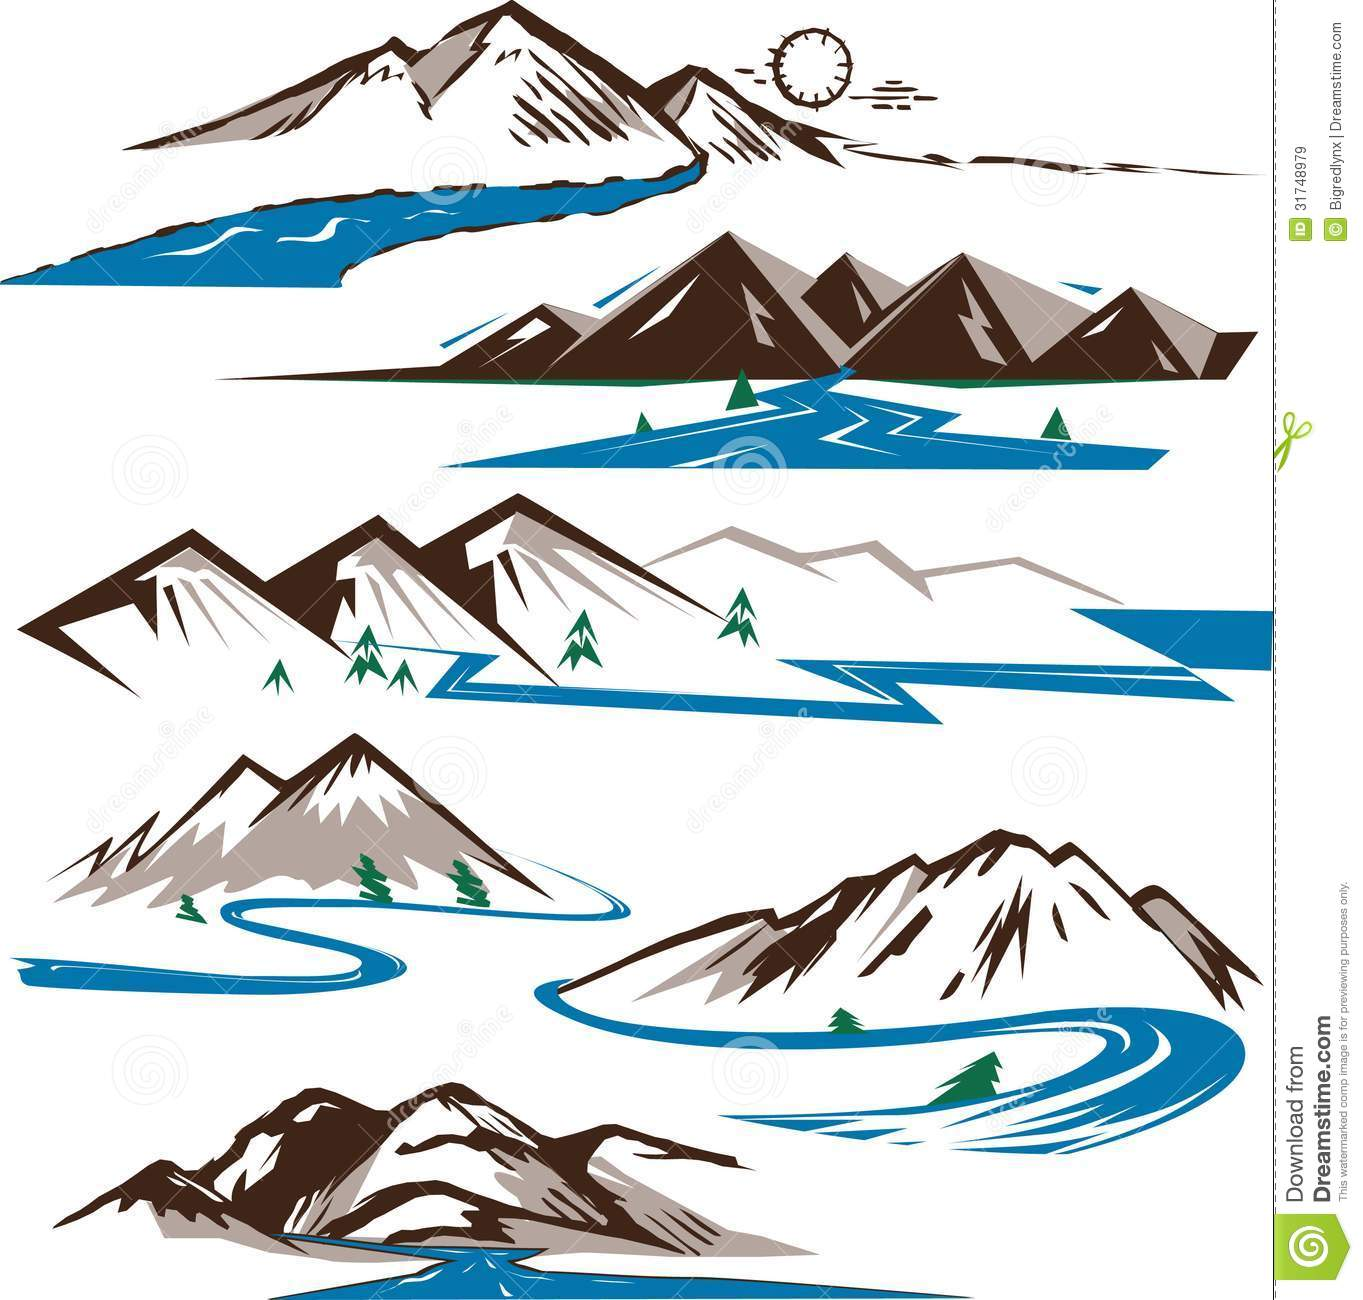 Clip art collection of stylized rivers and mountains.